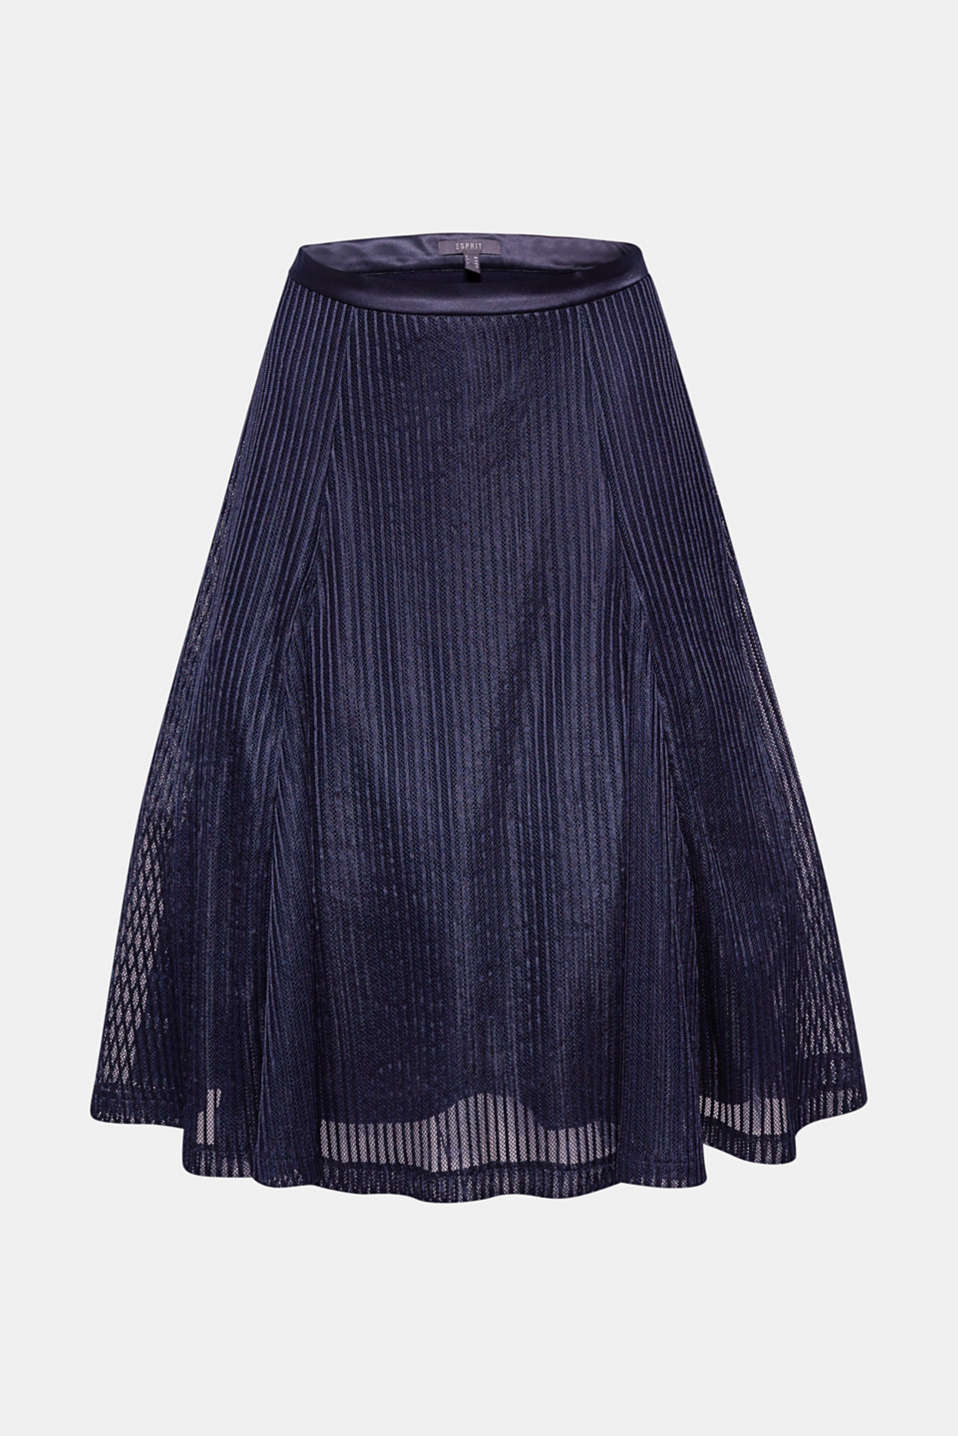 Swirls seductively around your legs as you stroll, twirl and dance: this flared tulle skirt with shimmering, textured stripes and a volume-boosting underskirt.